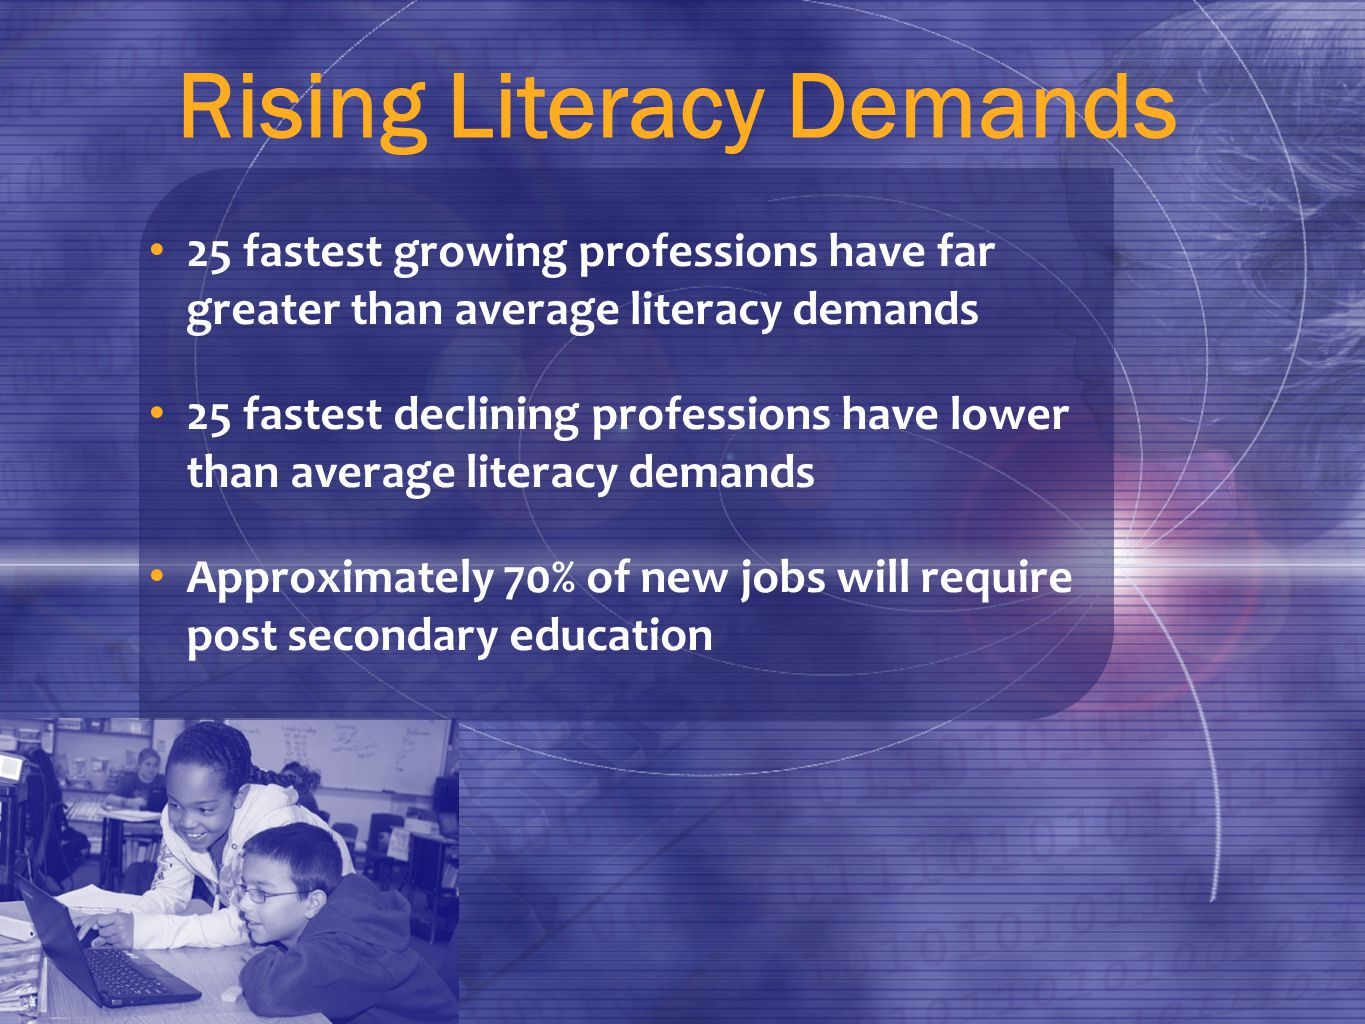 Rising Literacy Demands 25 fastest growing professions have far greater than average literacy demands 25 fastest declining professions have lower than average literacy demands Approximately 70% of new jobs will require post secondary education